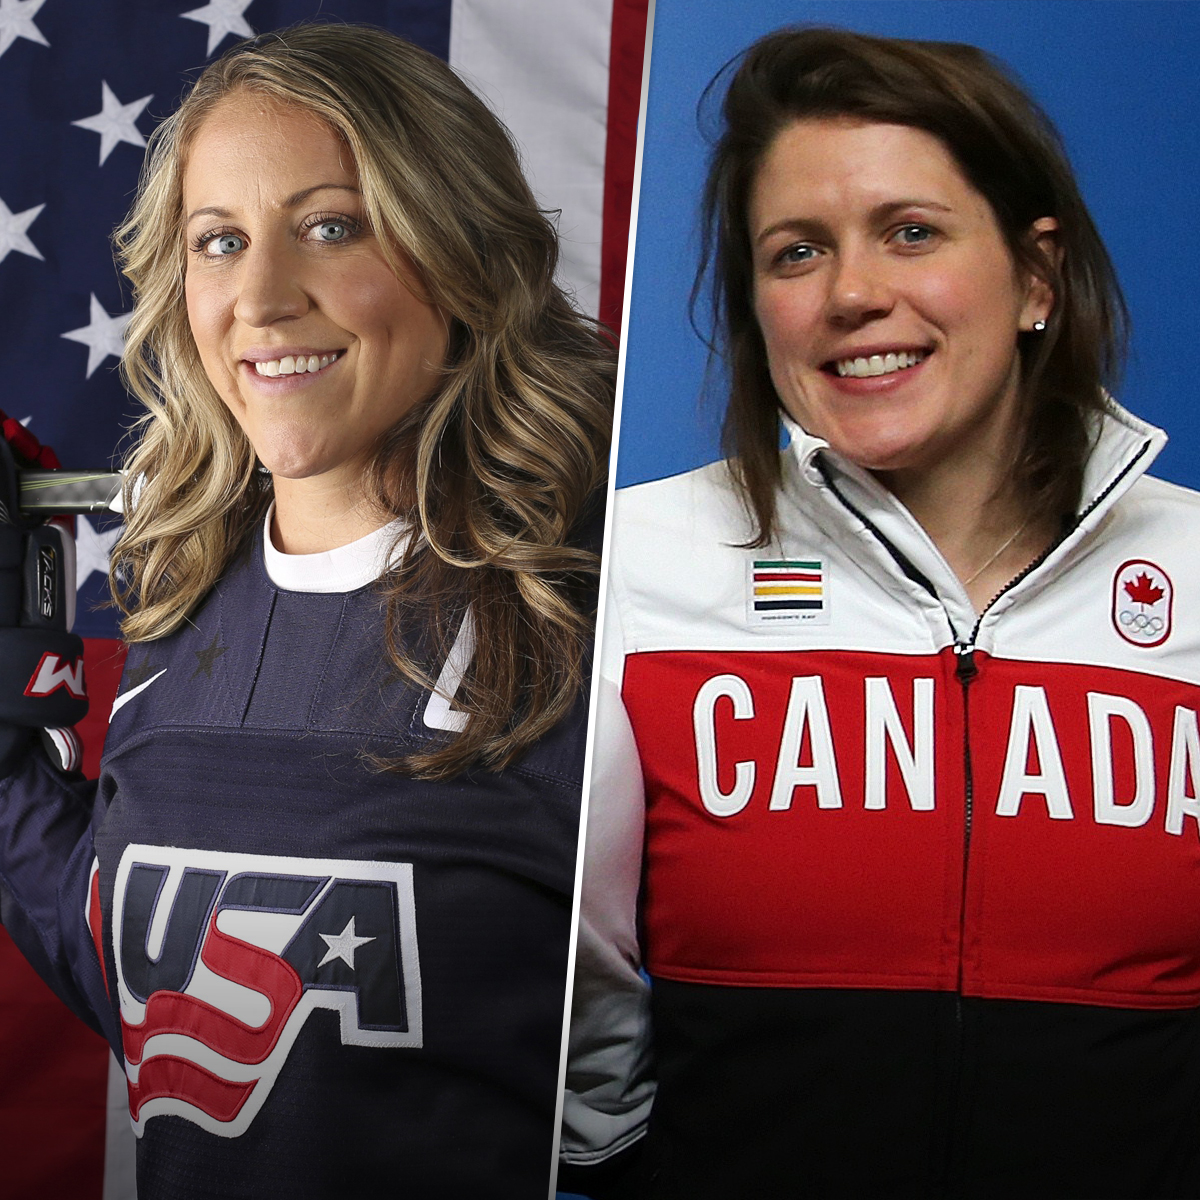 Puck'er up: U S  women's hockey star marries her former Canadian rival